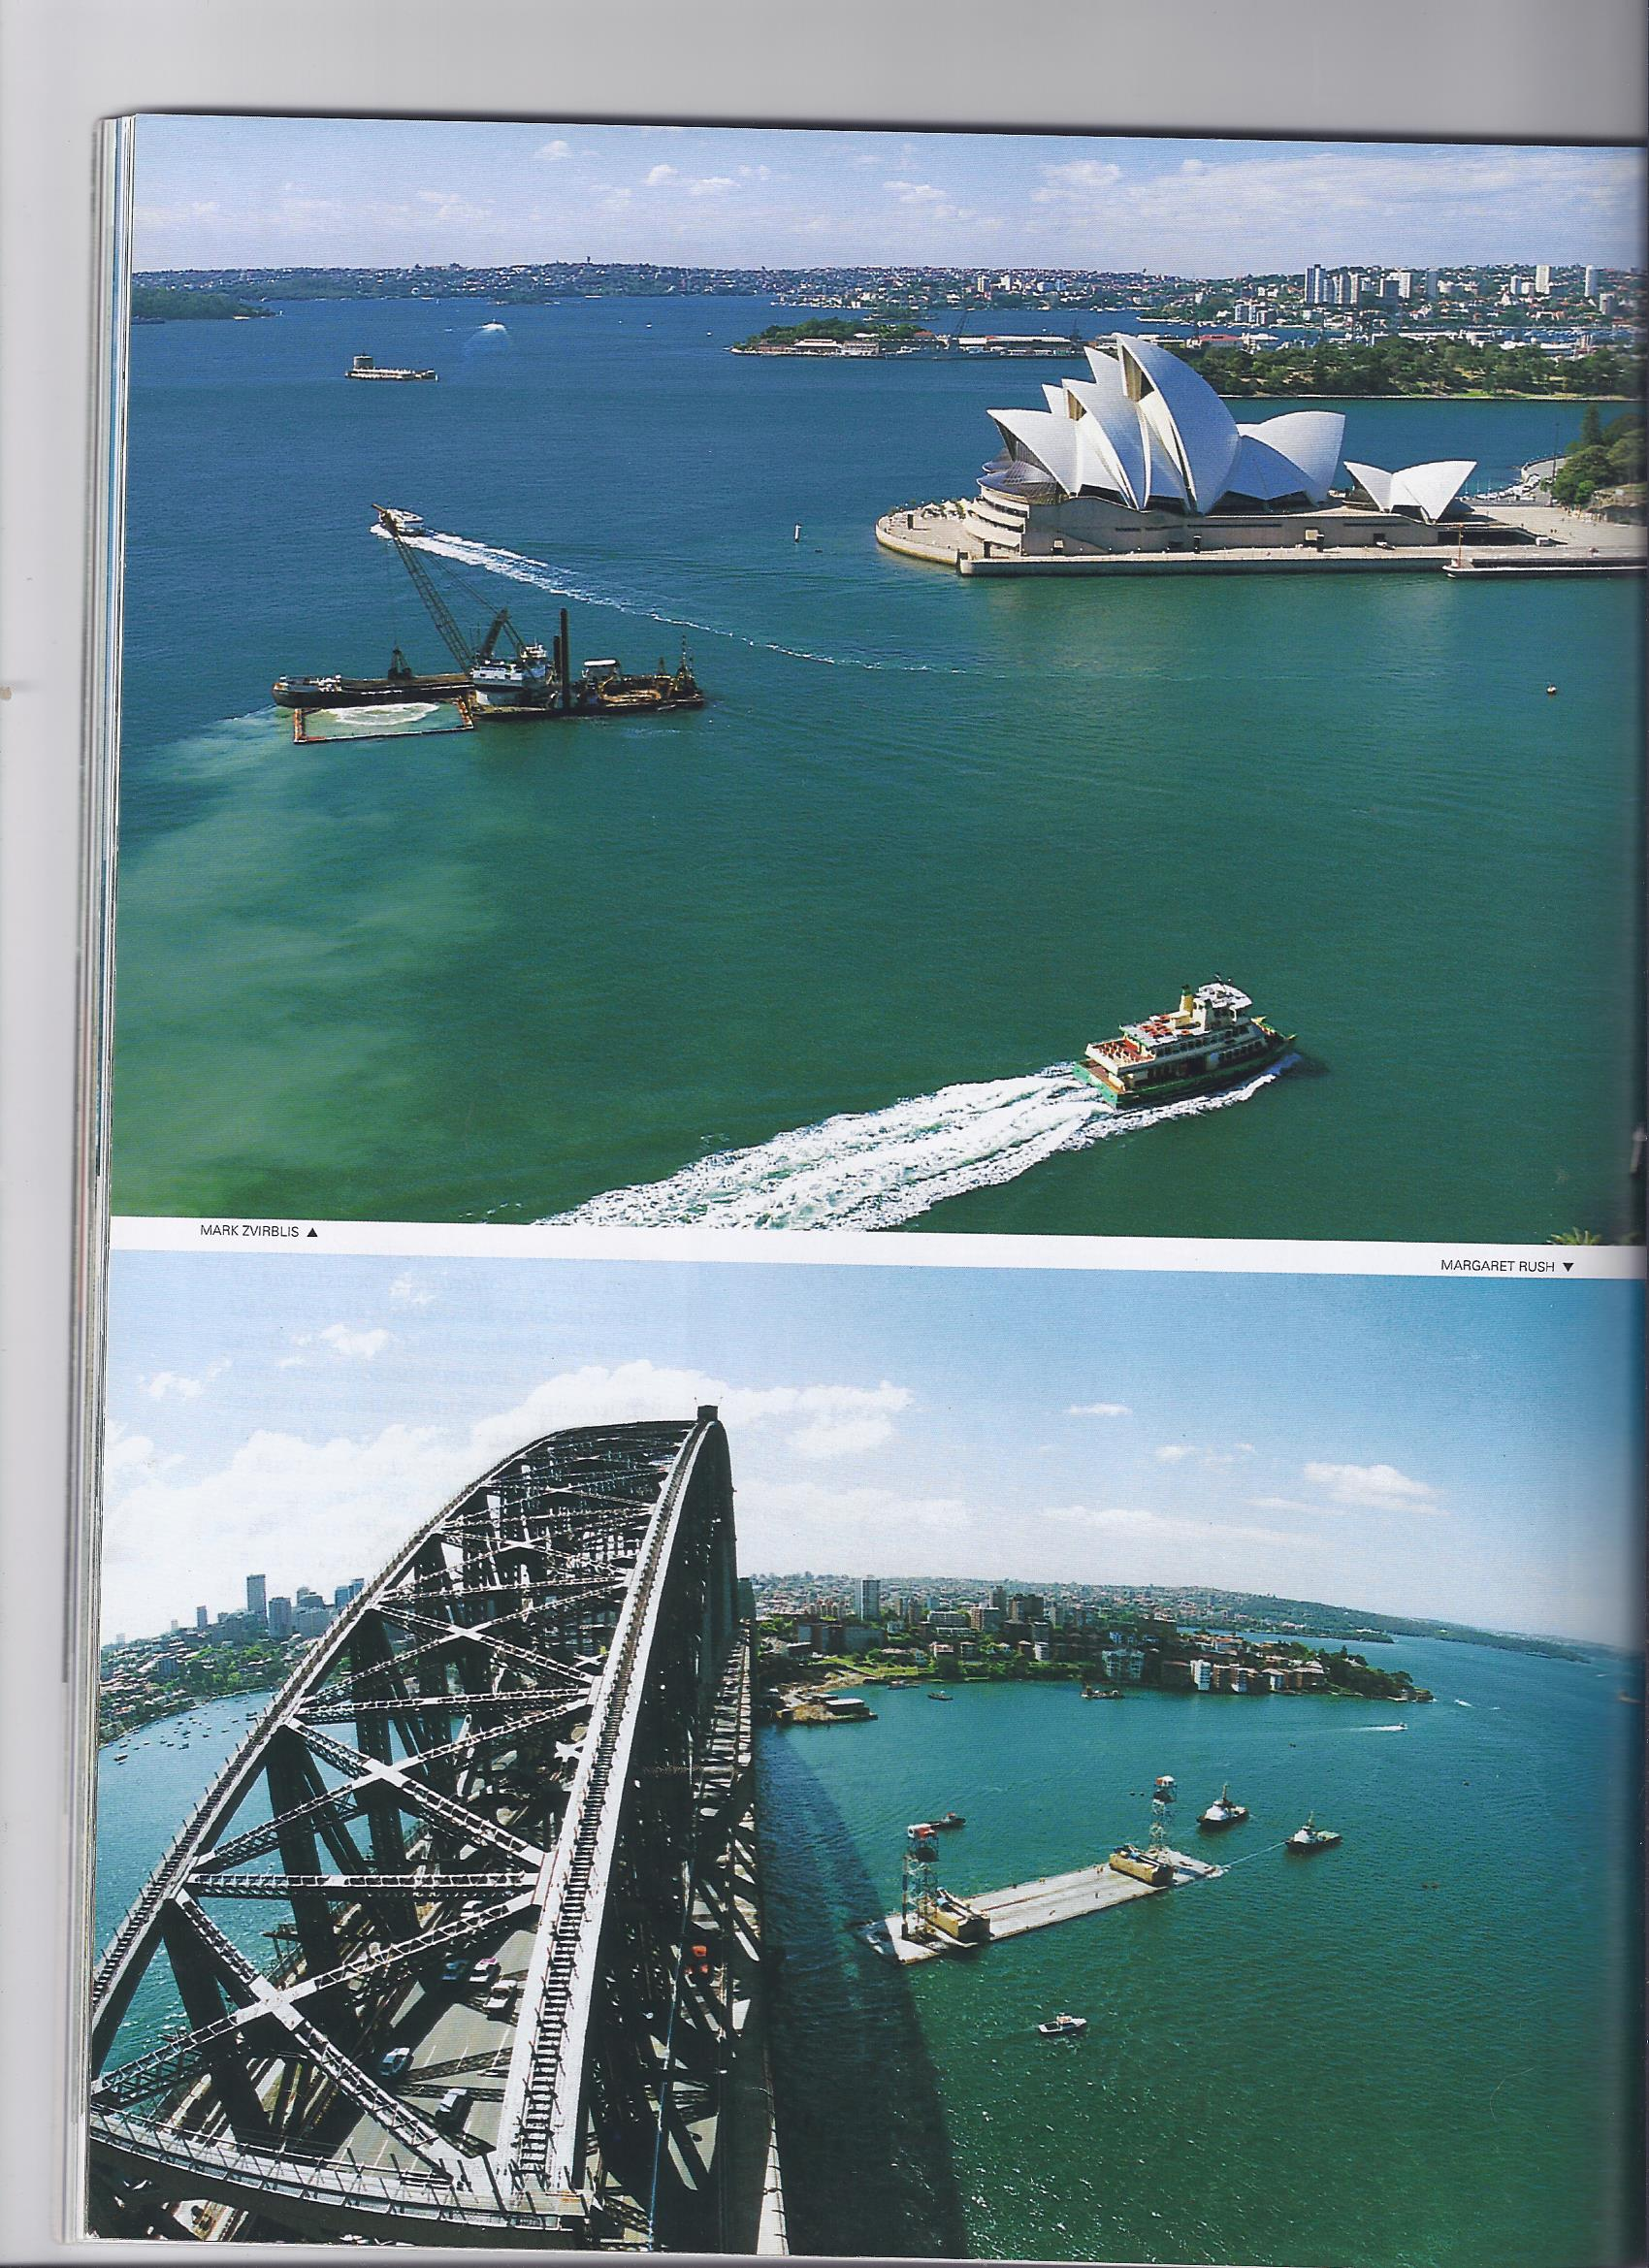 SYDNEY HARBOUR TUNNEL CONSTRUCTION AUSTRALIAN GEOGRAPHIC0009.jpg